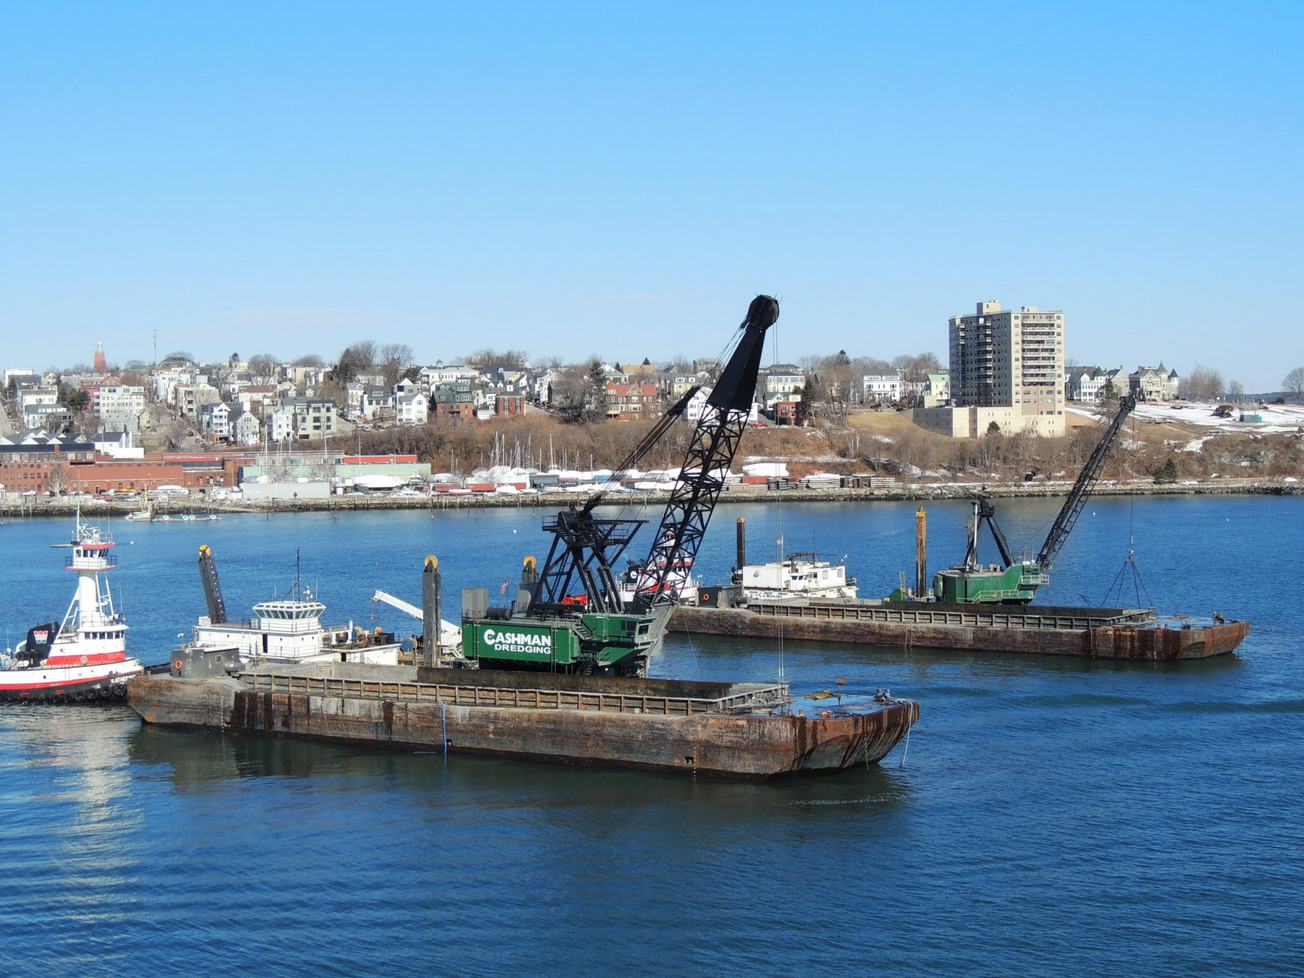 Dredging in Portland harbor, 2004. [Photo from www.dredgingcontractors.org]